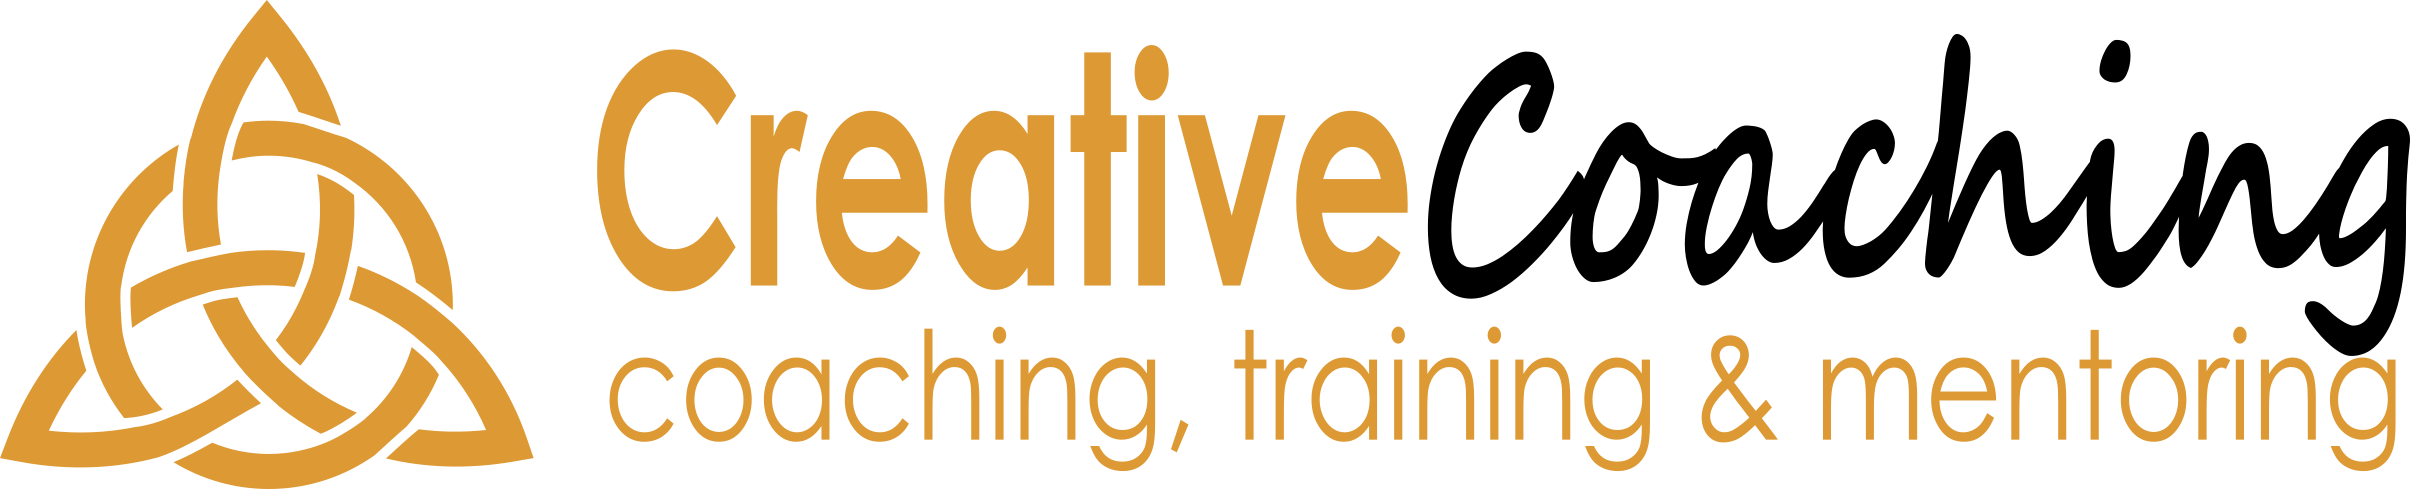 CreativeCoaching | coaching, mentoring & training te Oudenaarde